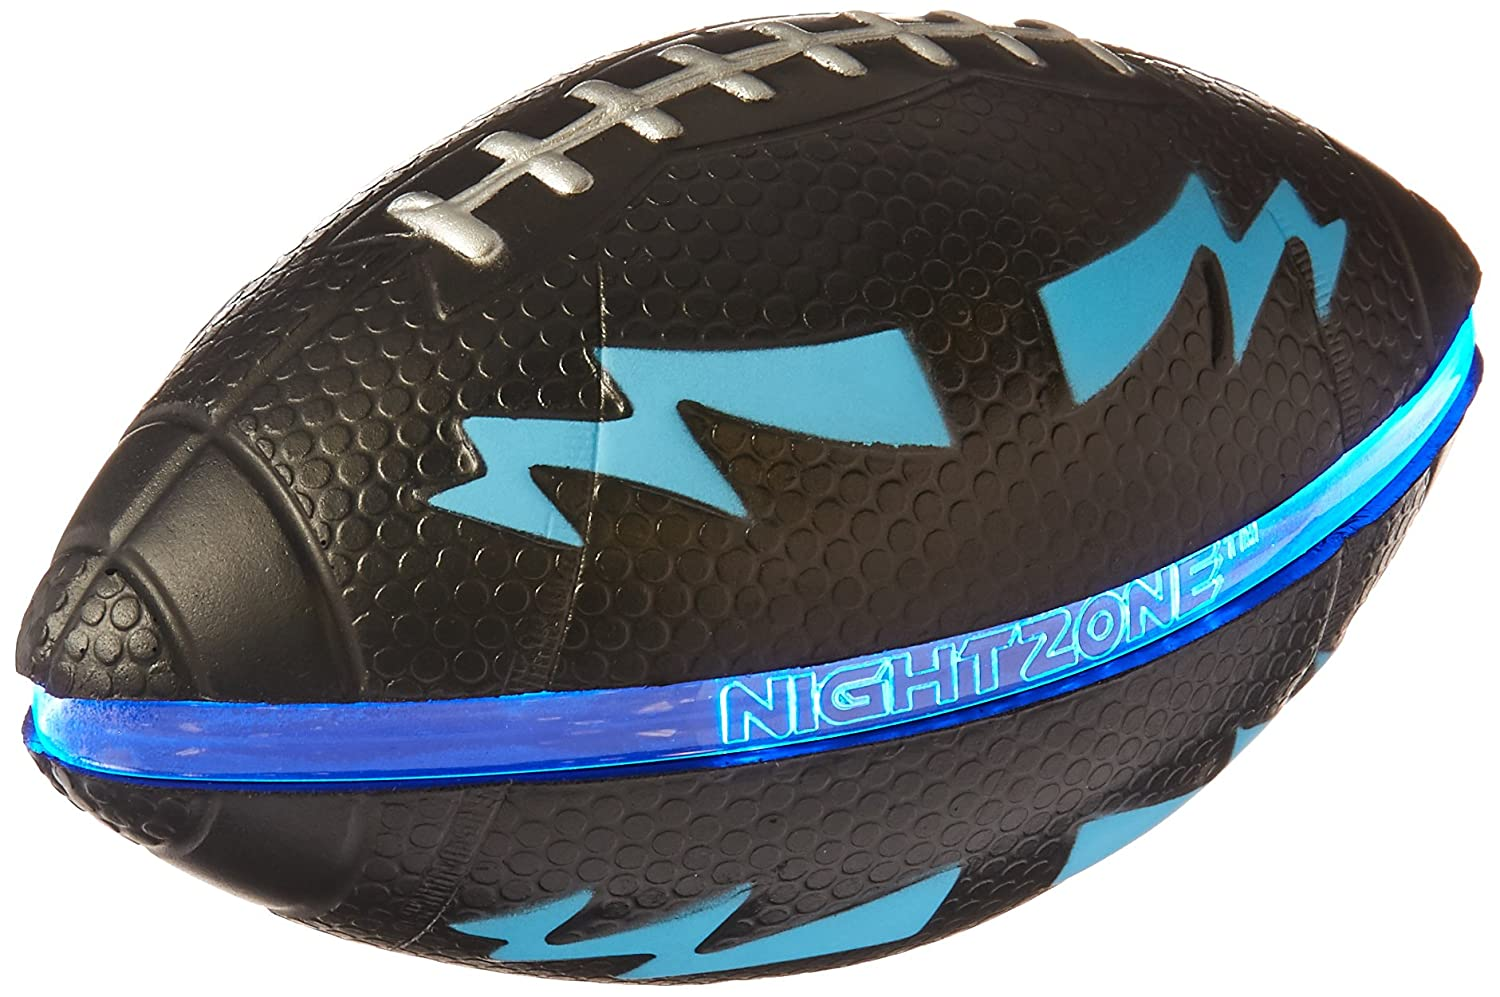 Toysmith 56356 7 Night Zone Football Assorted Colors